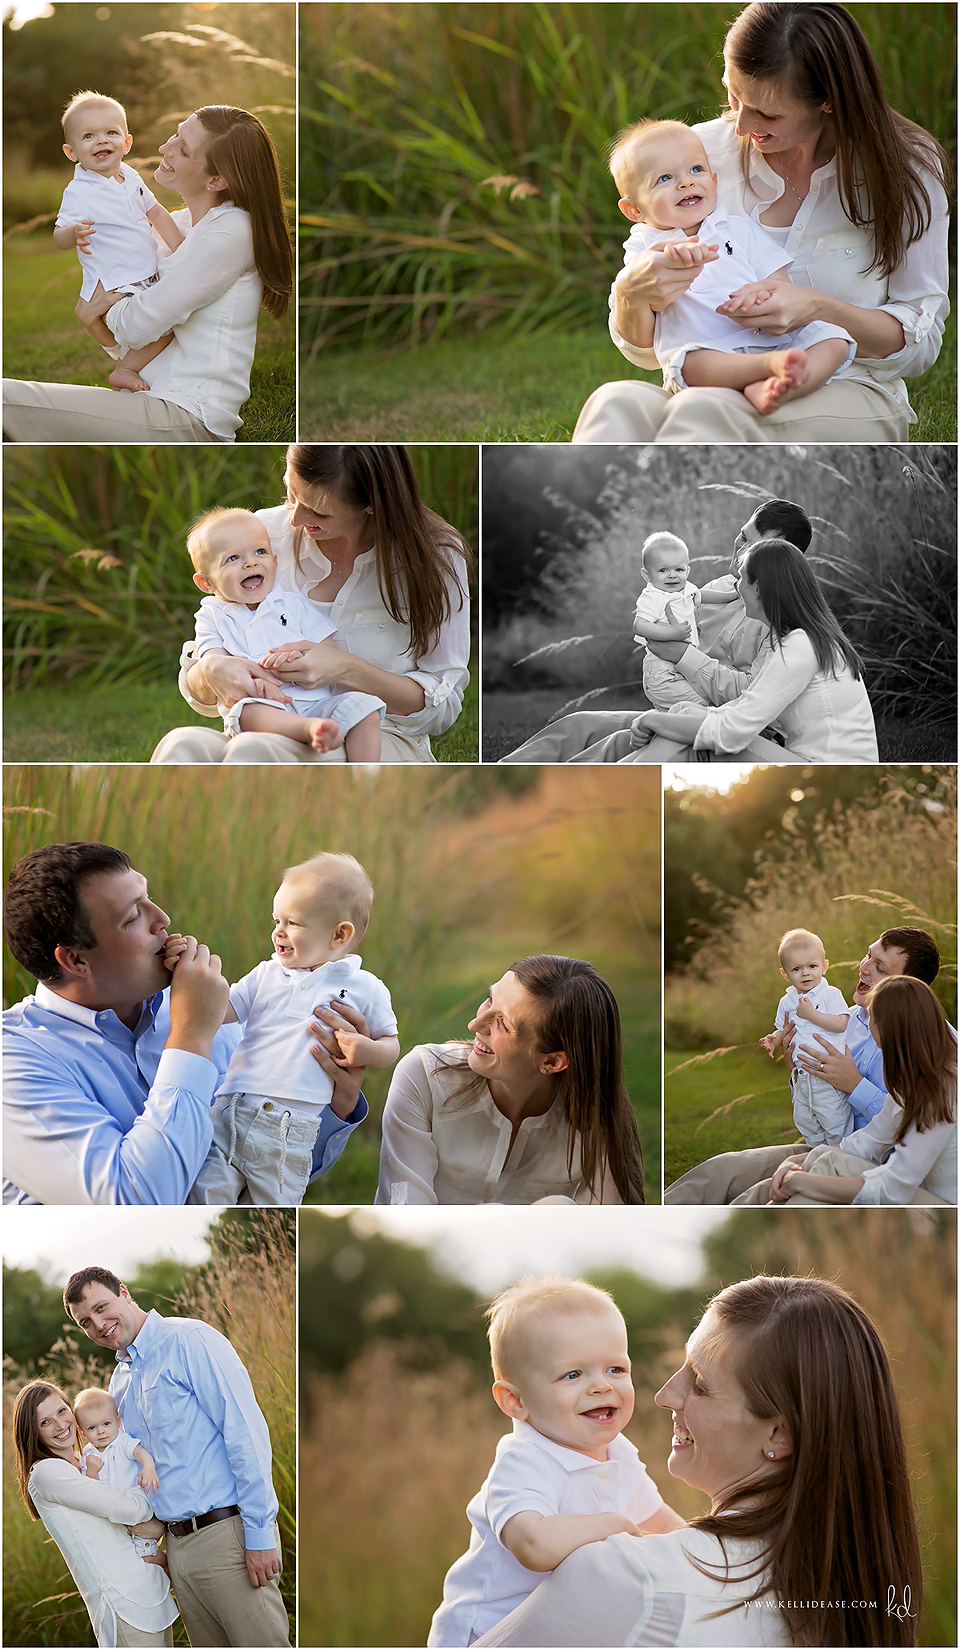 Family Photography in CT | West Hartford, CT Baby Photographer | CT Sunset Family Photography | Hartford County Family Photographer